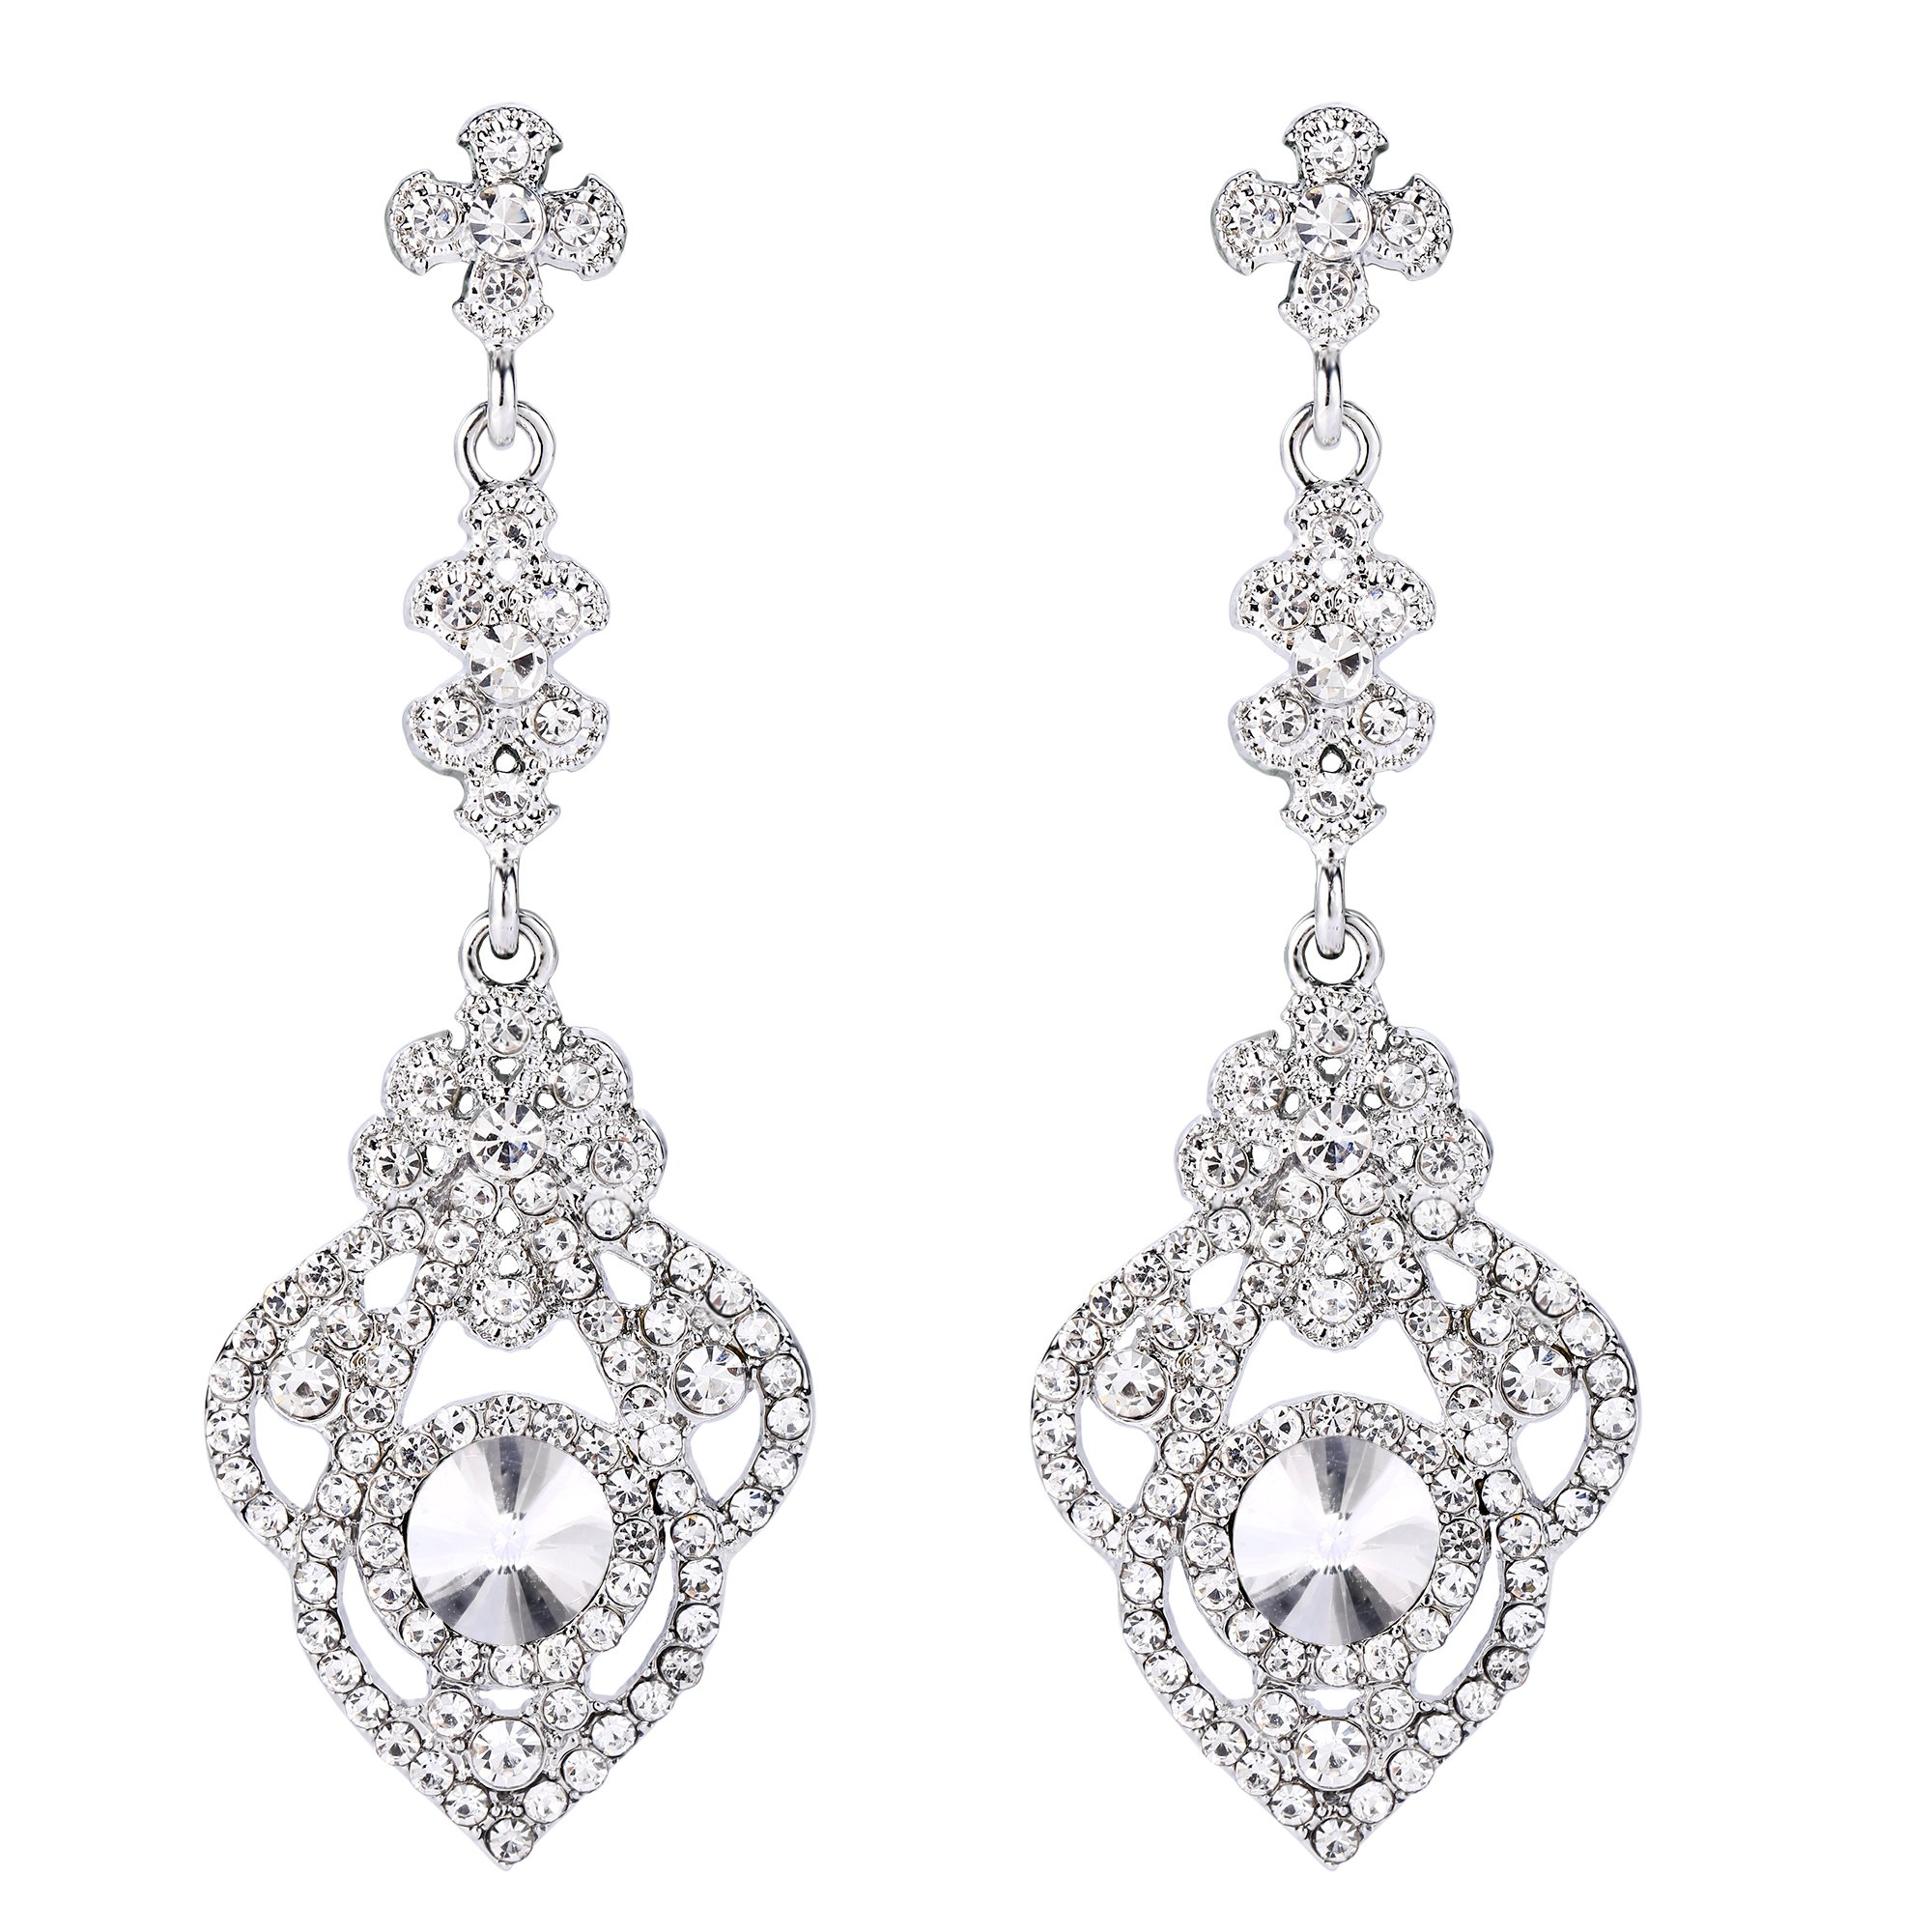 BriLove Women's Victorian Style Dangle Earrings with Crystal Art Deco Gatsby Inspired Floral Chandelier Clear Silver-Tone